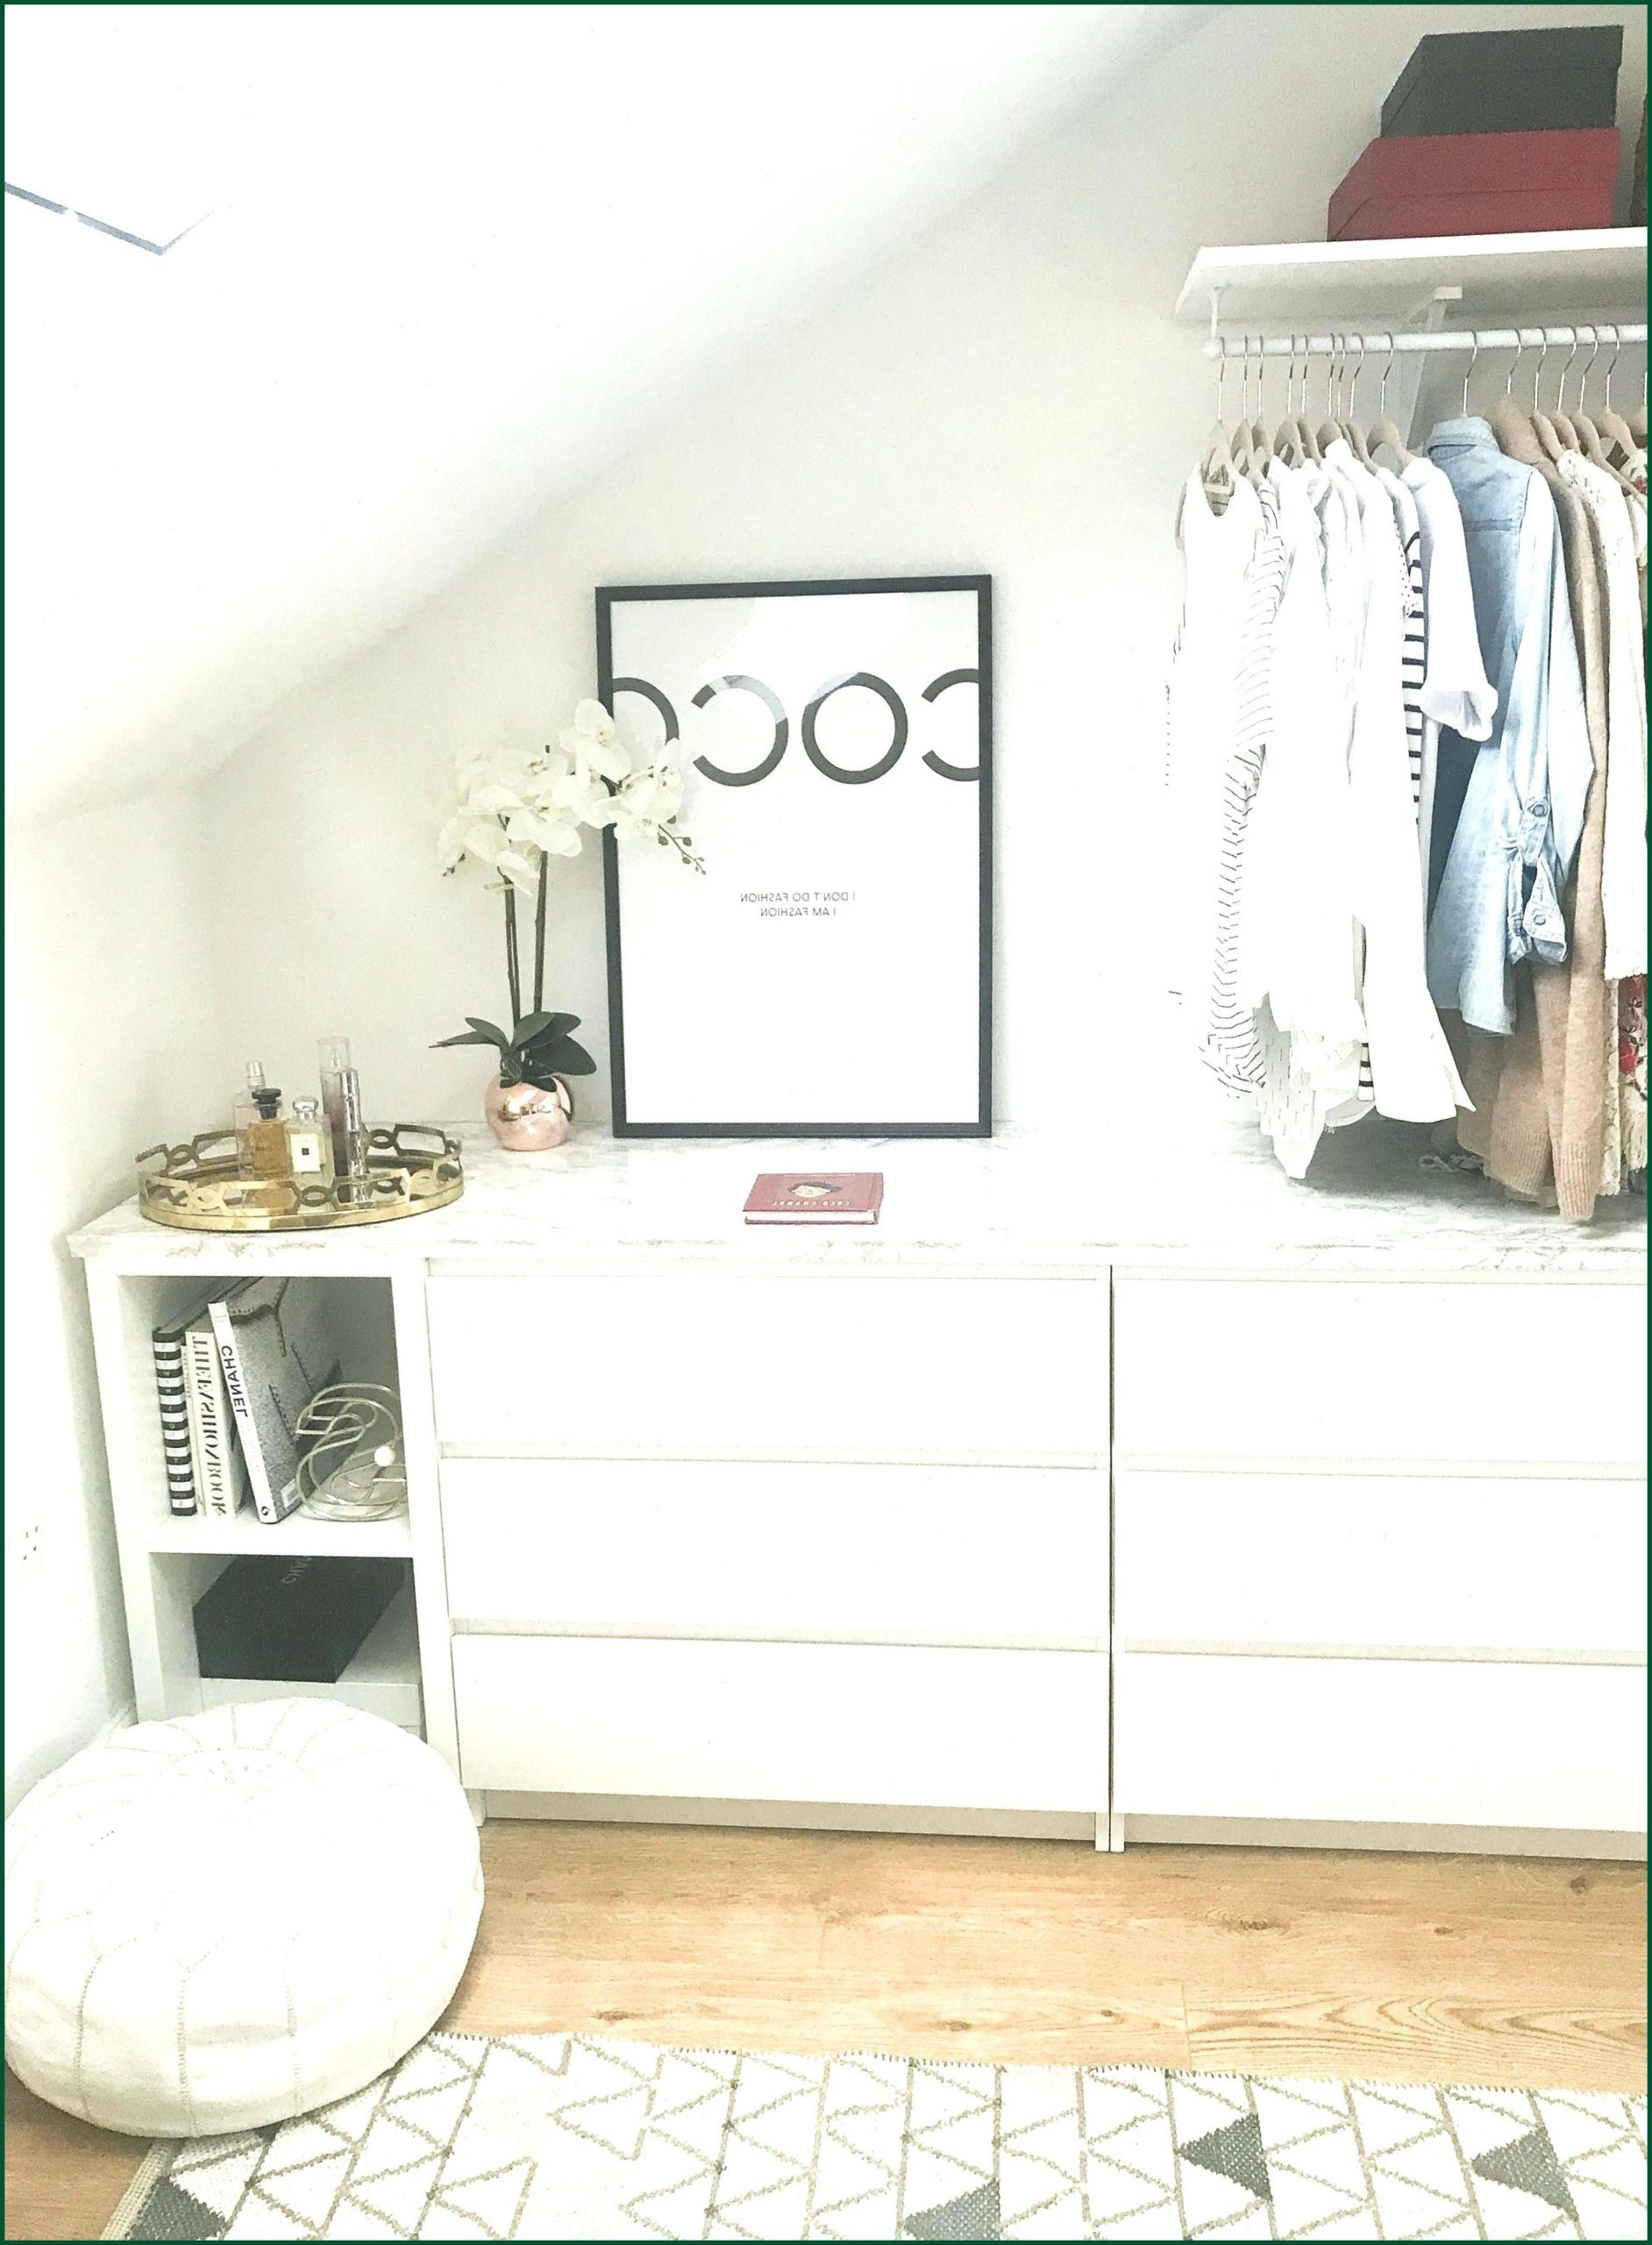 Walk In Wardobe Closet Diy Ikea Malm Kallax Hack With Marble Top Dreamhouseinter In 2020 Ikea Diy Ikea Malm Begehbarer Kleiderschrank Selber Bauen